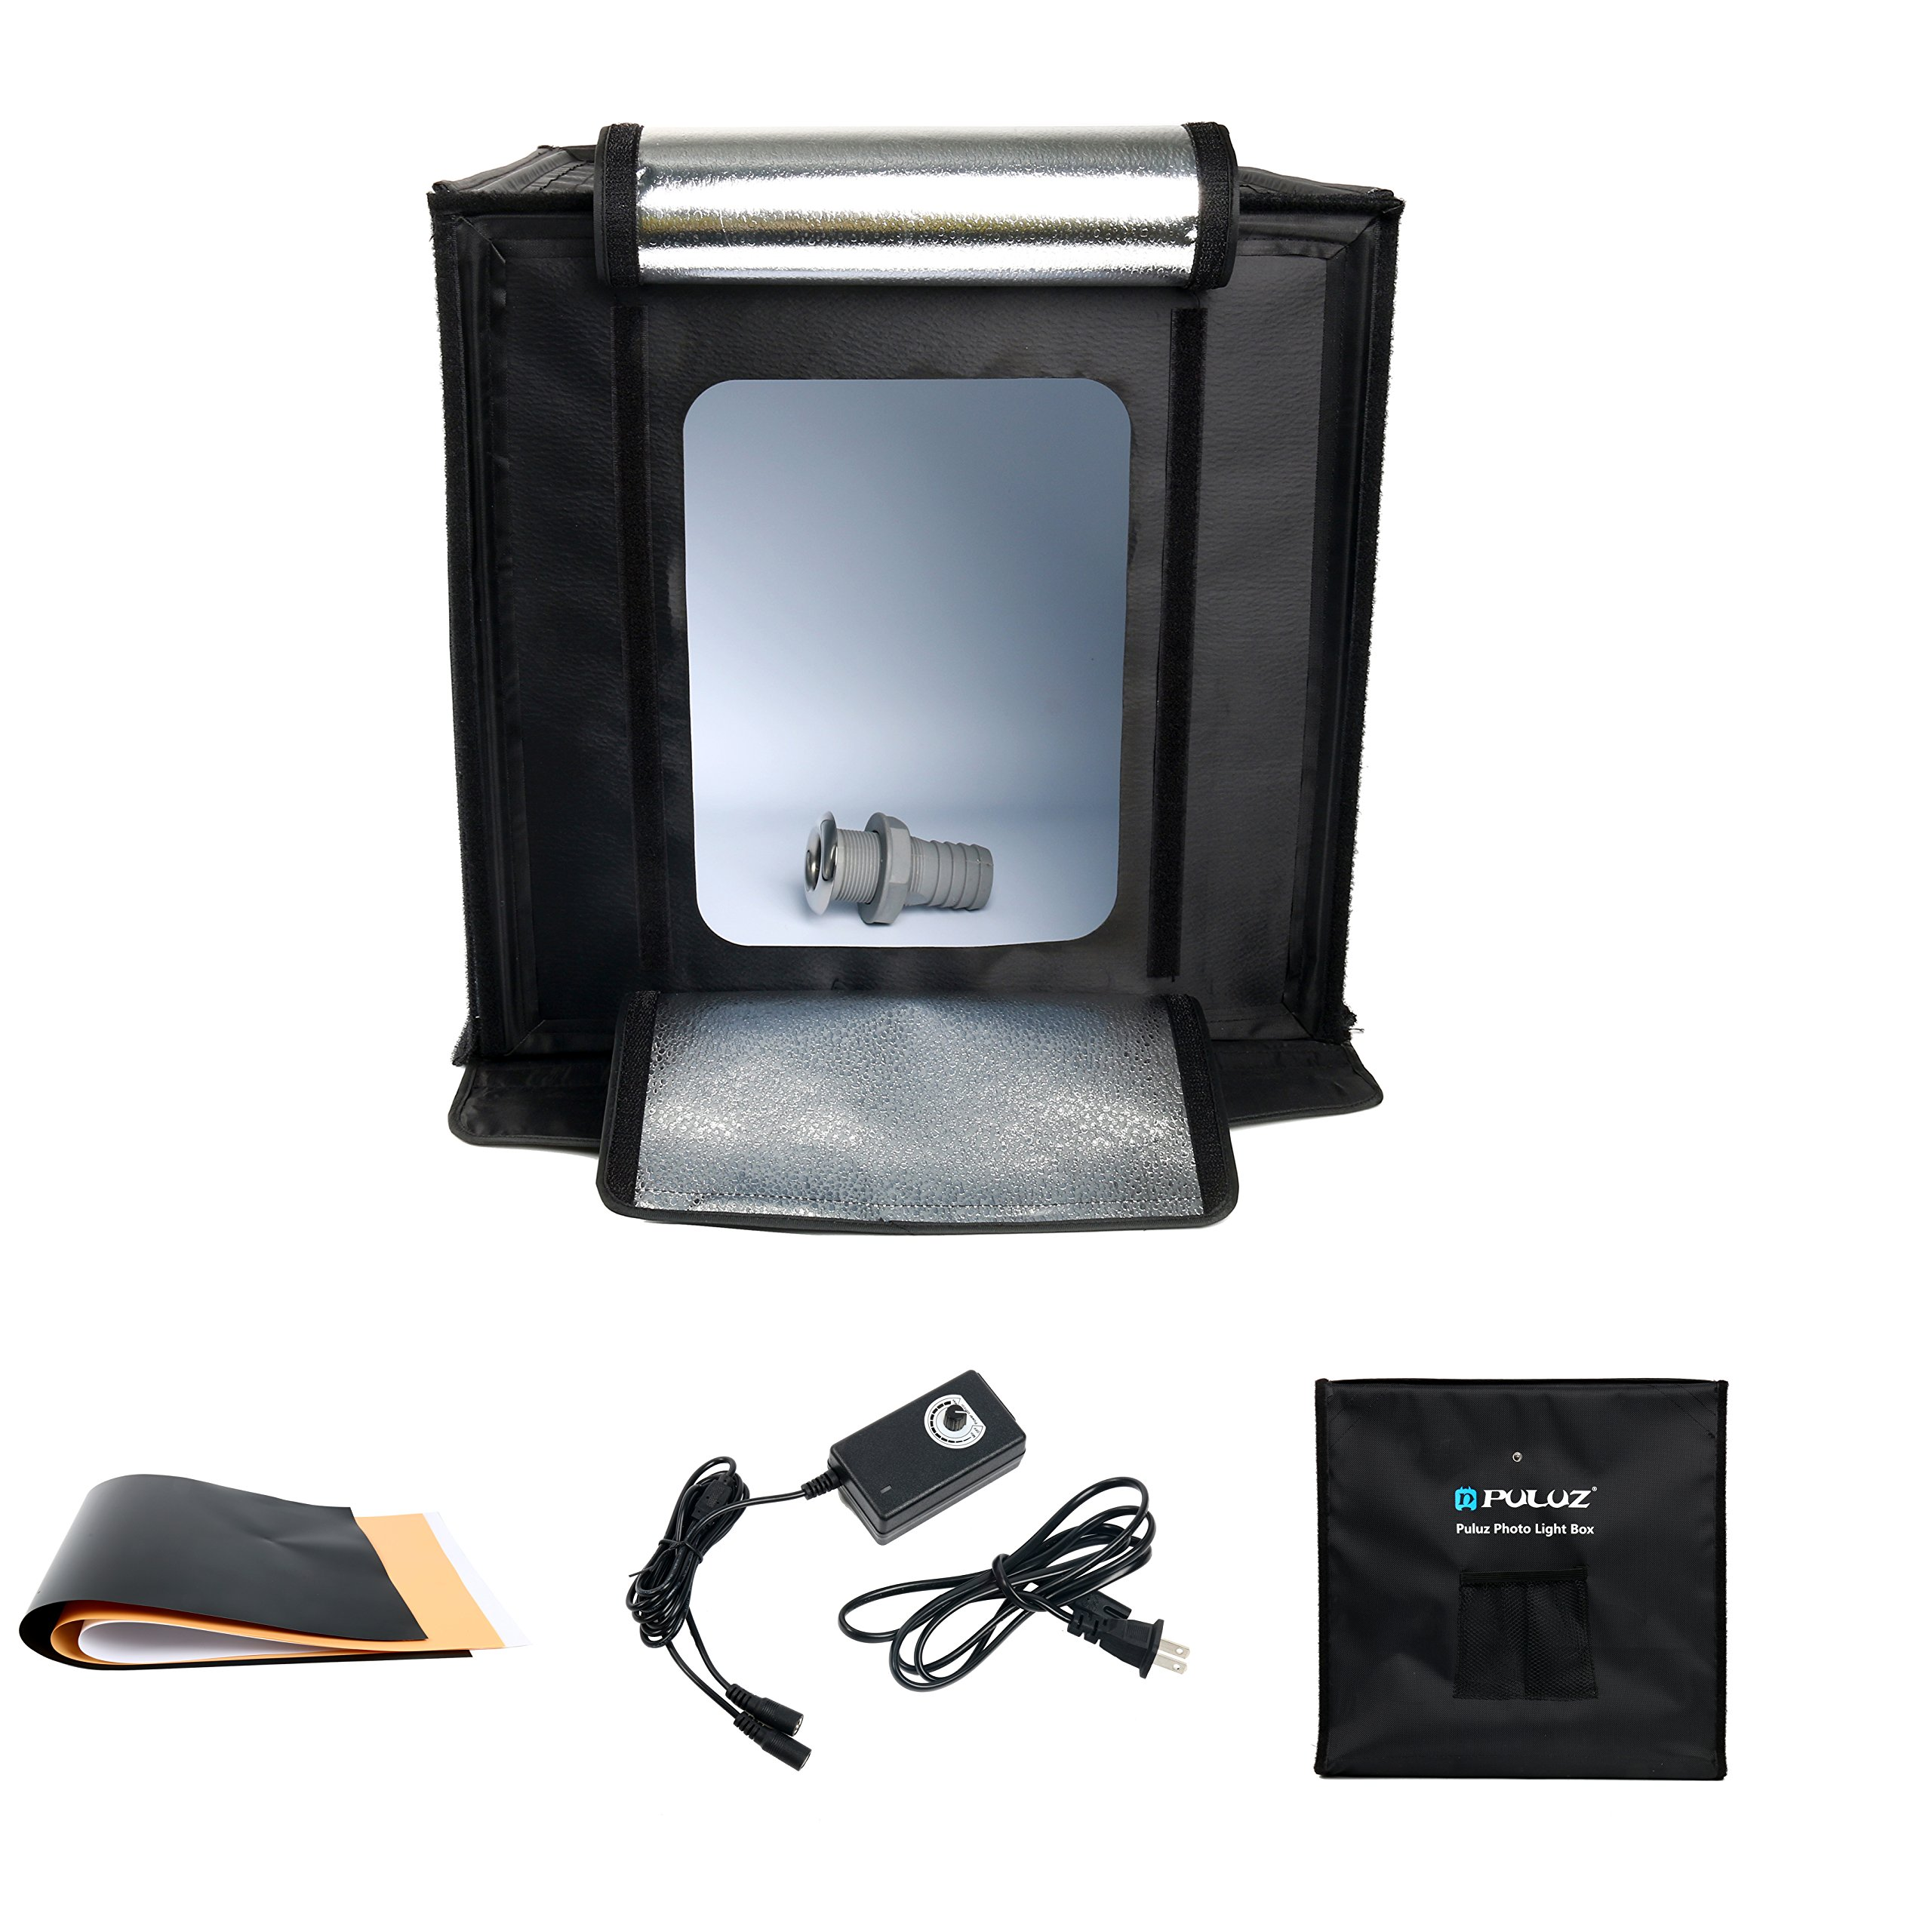 PULUZ Portable Photo Studio Box, PULUZ 16 inch 40cm Portable Photography Light Tent, Professional Folding Shooting Lighting Soft Box with 2x30 LED Lights & Three-Color Backdrops for Product Display